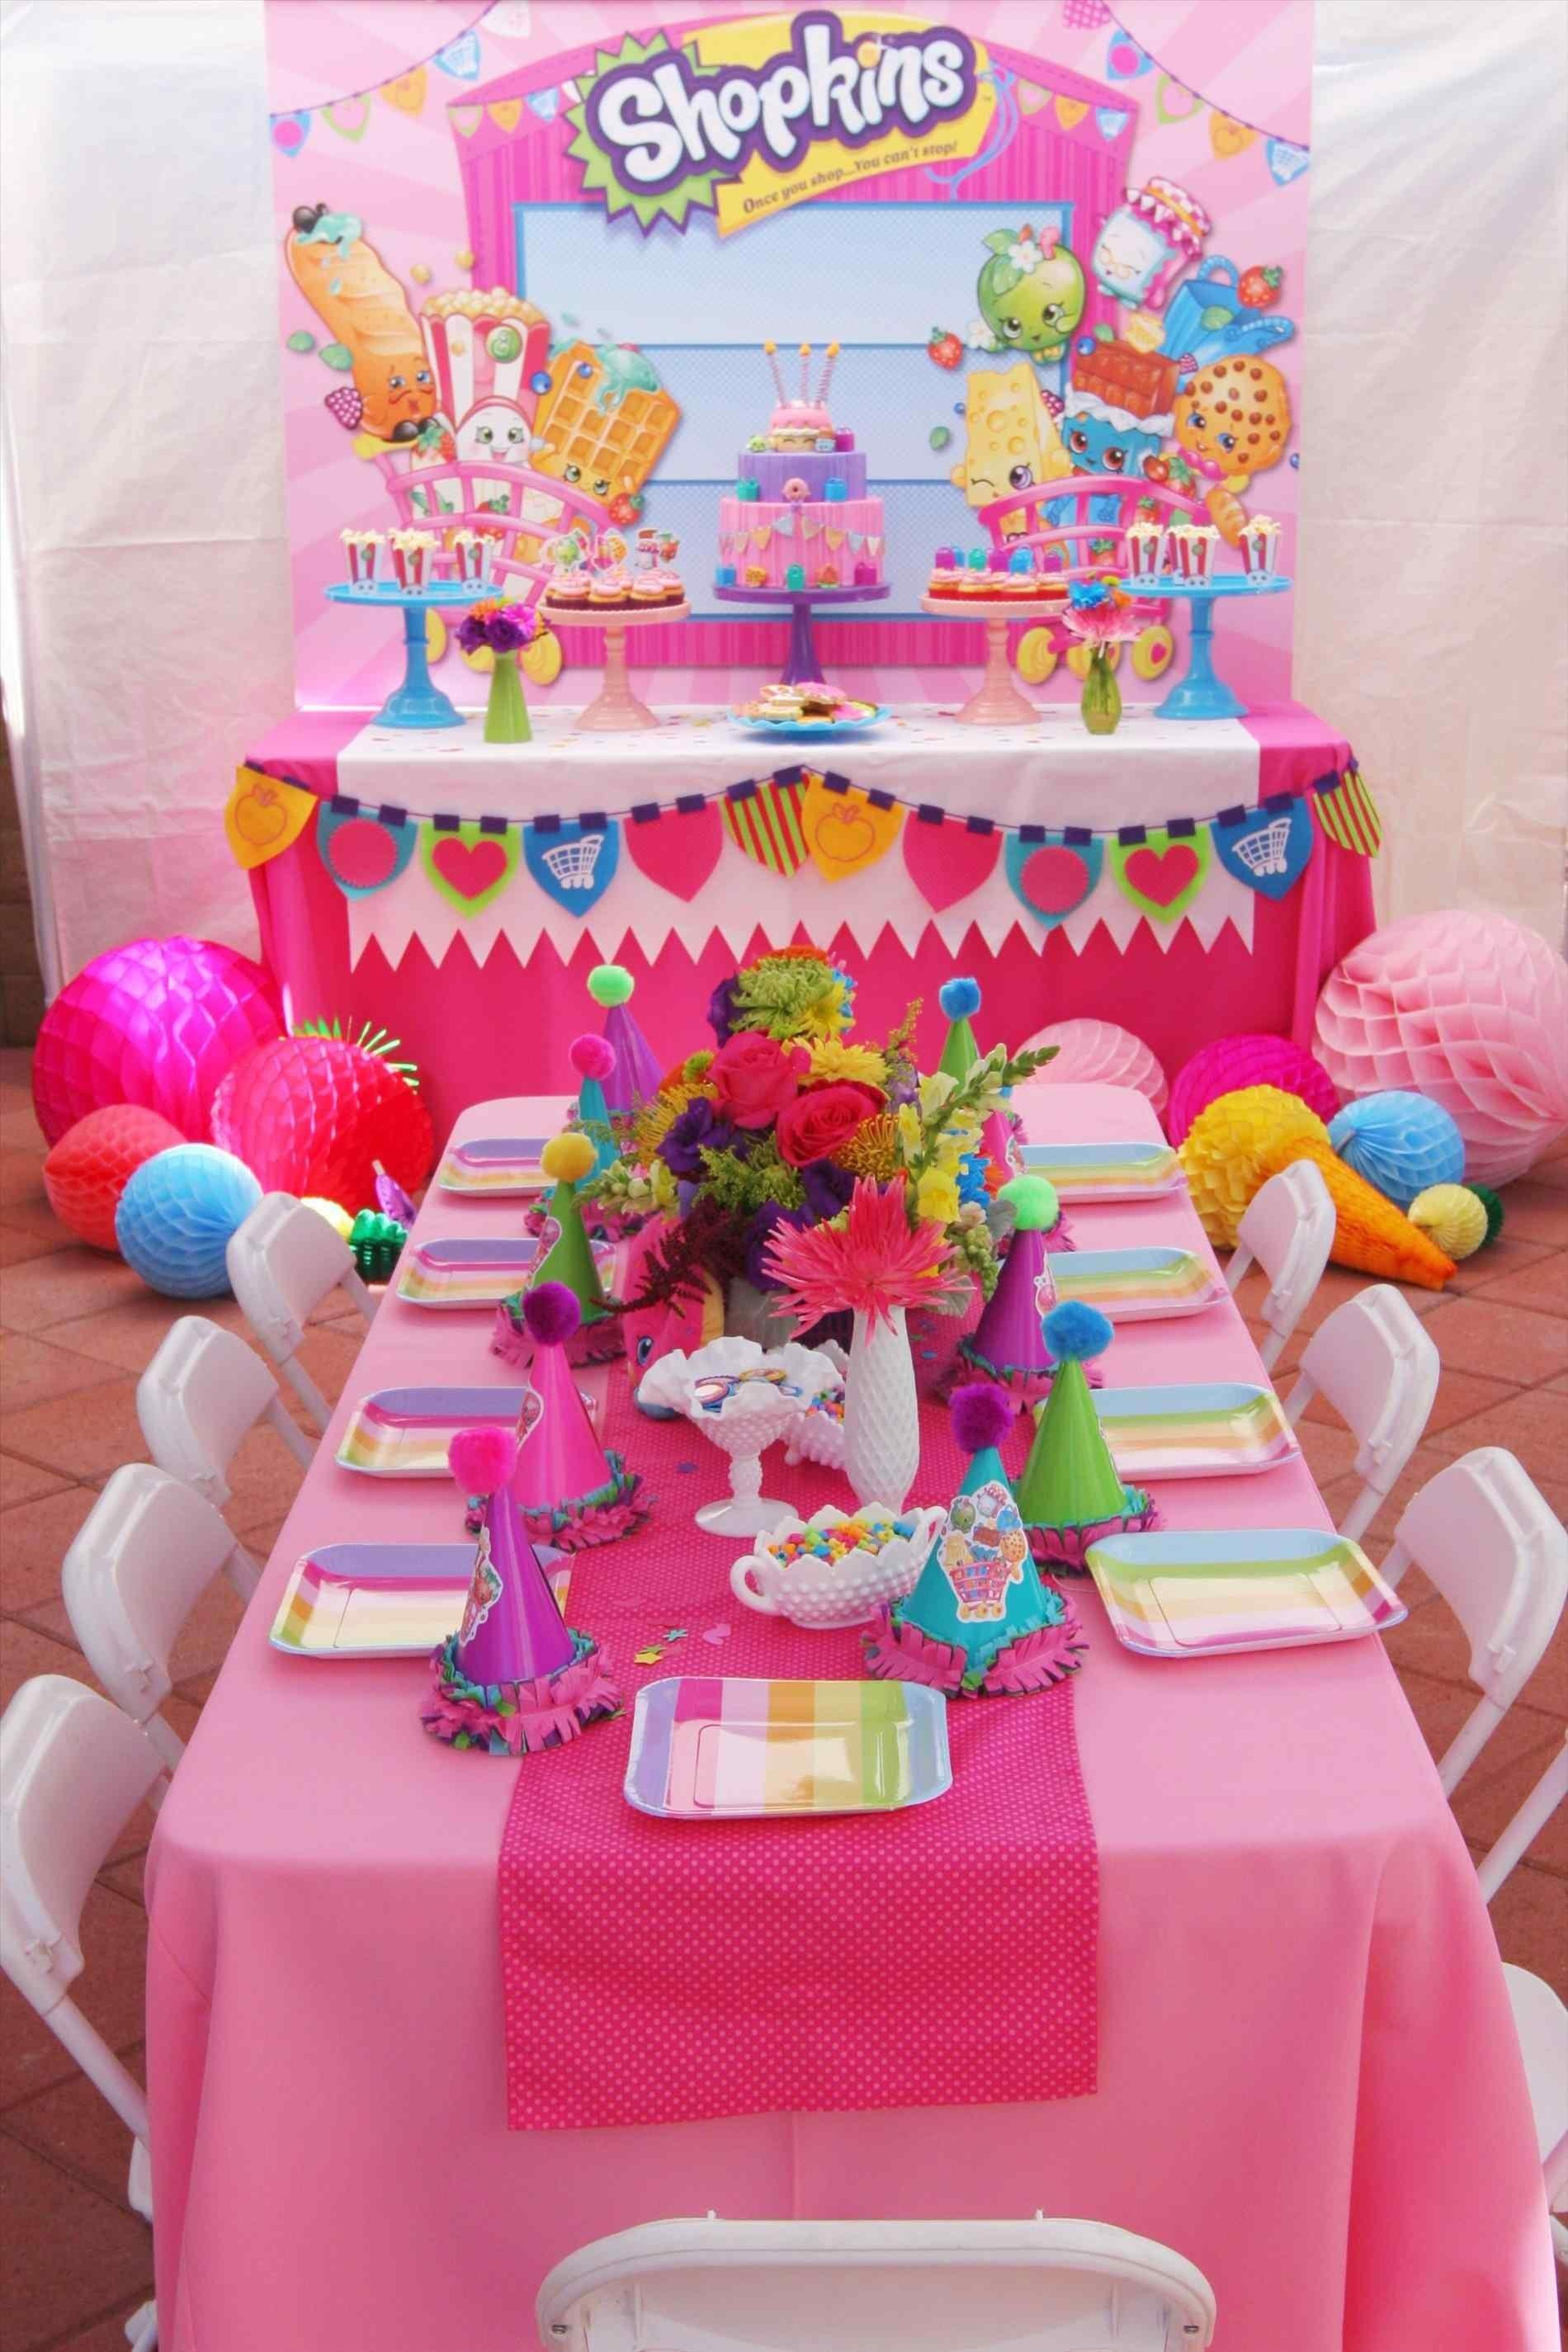 Girls Spa Birthday Decorations Party Cake Pink Teal Lime